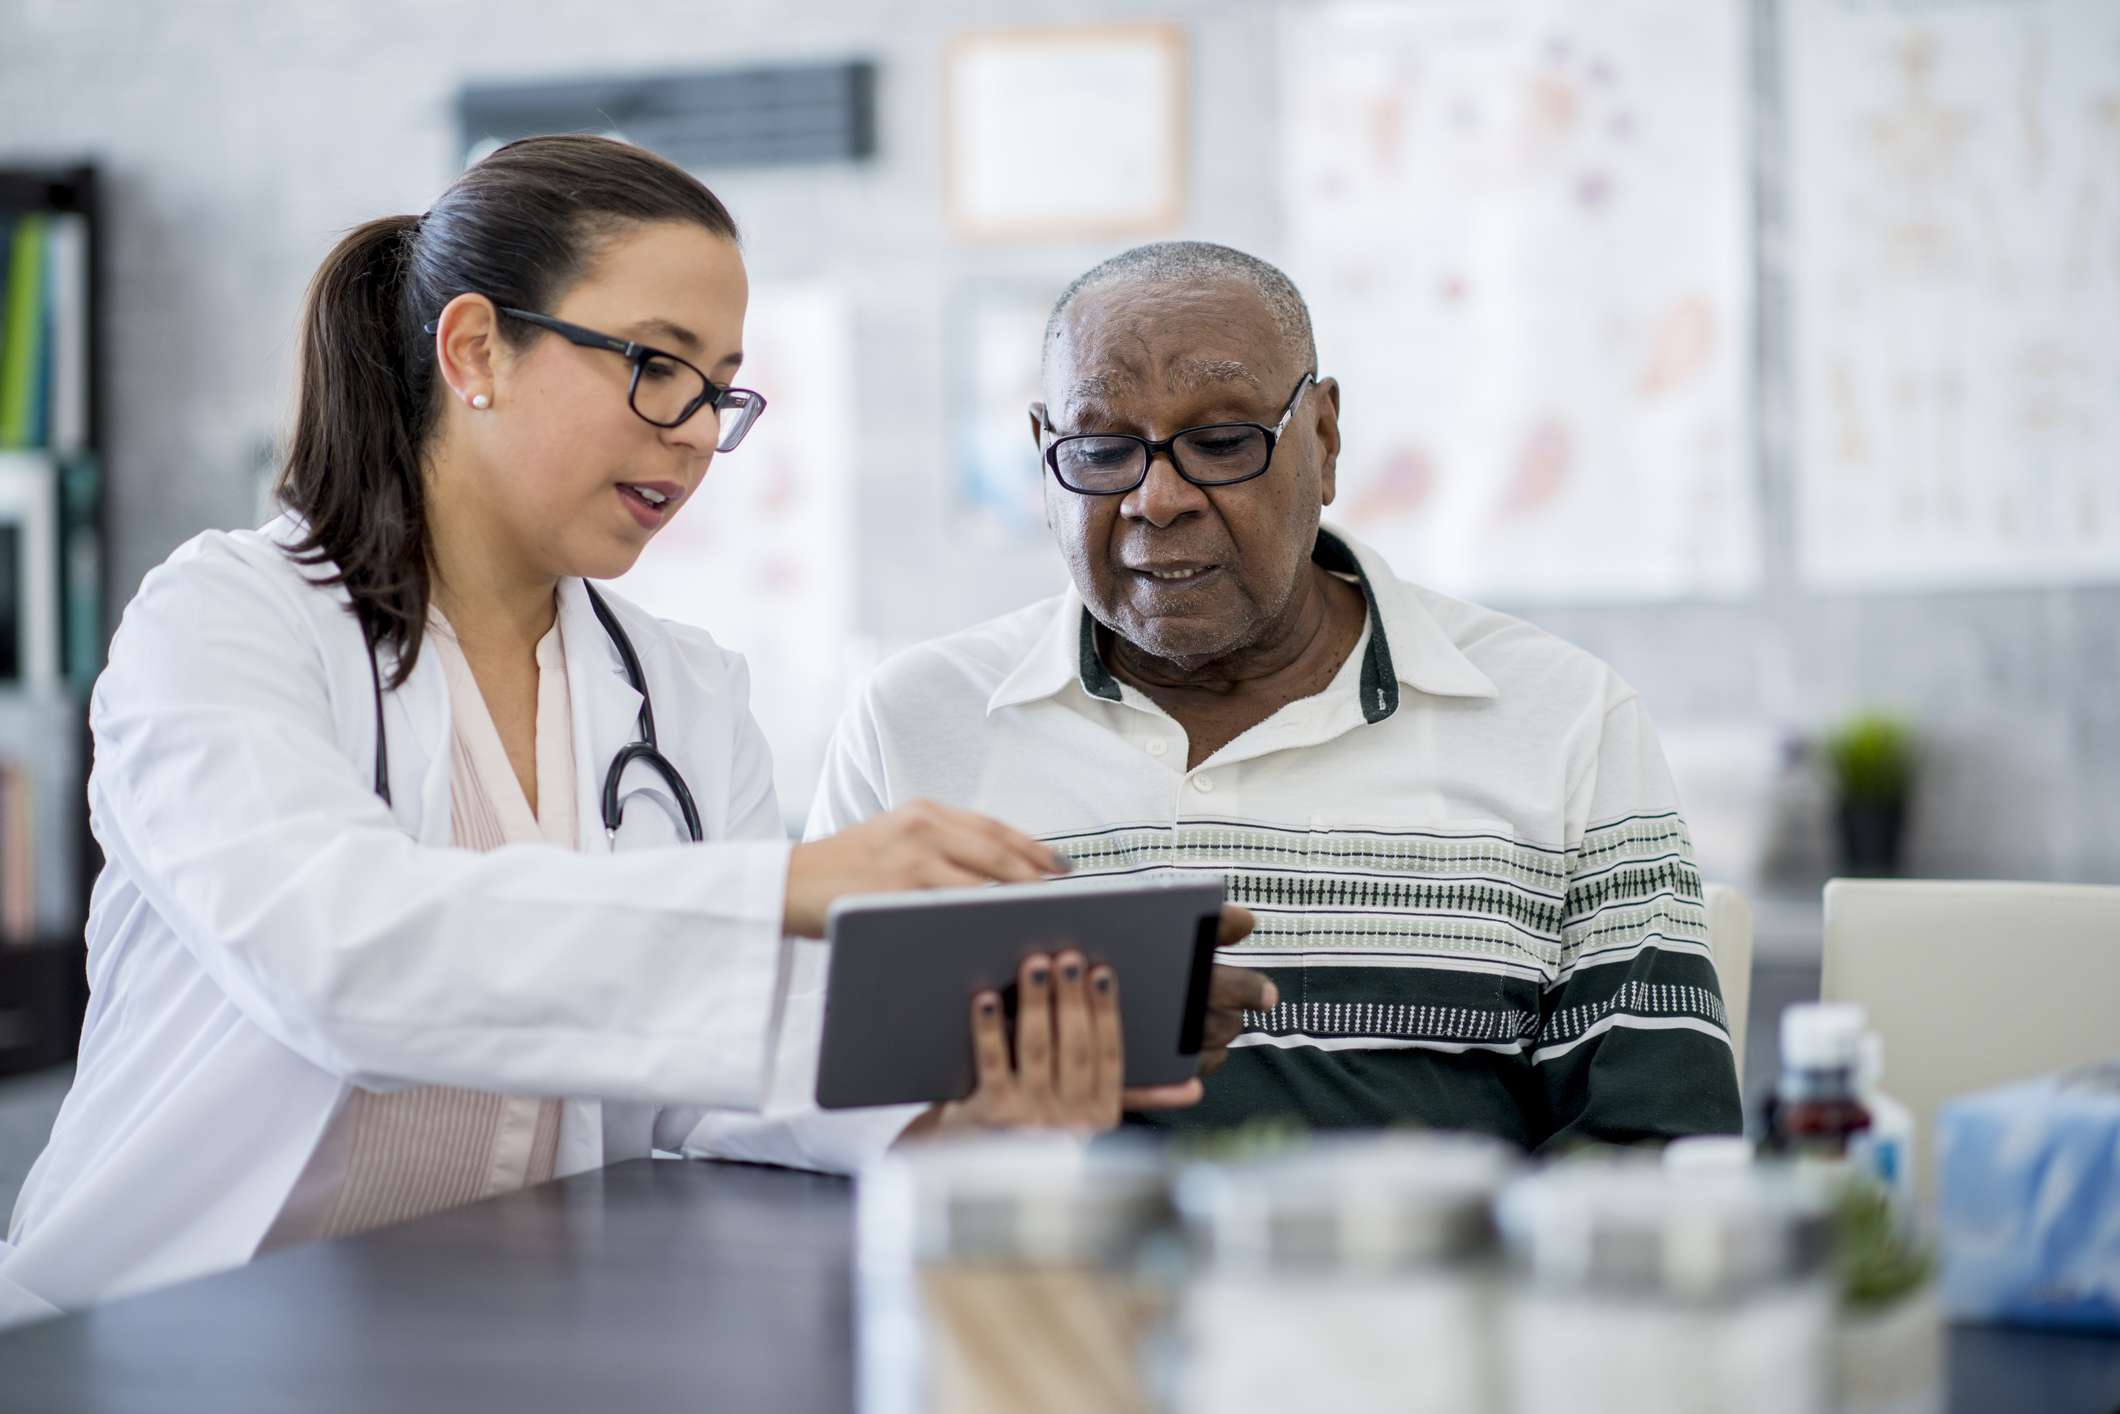 A doctor showing a patient results on a tablet